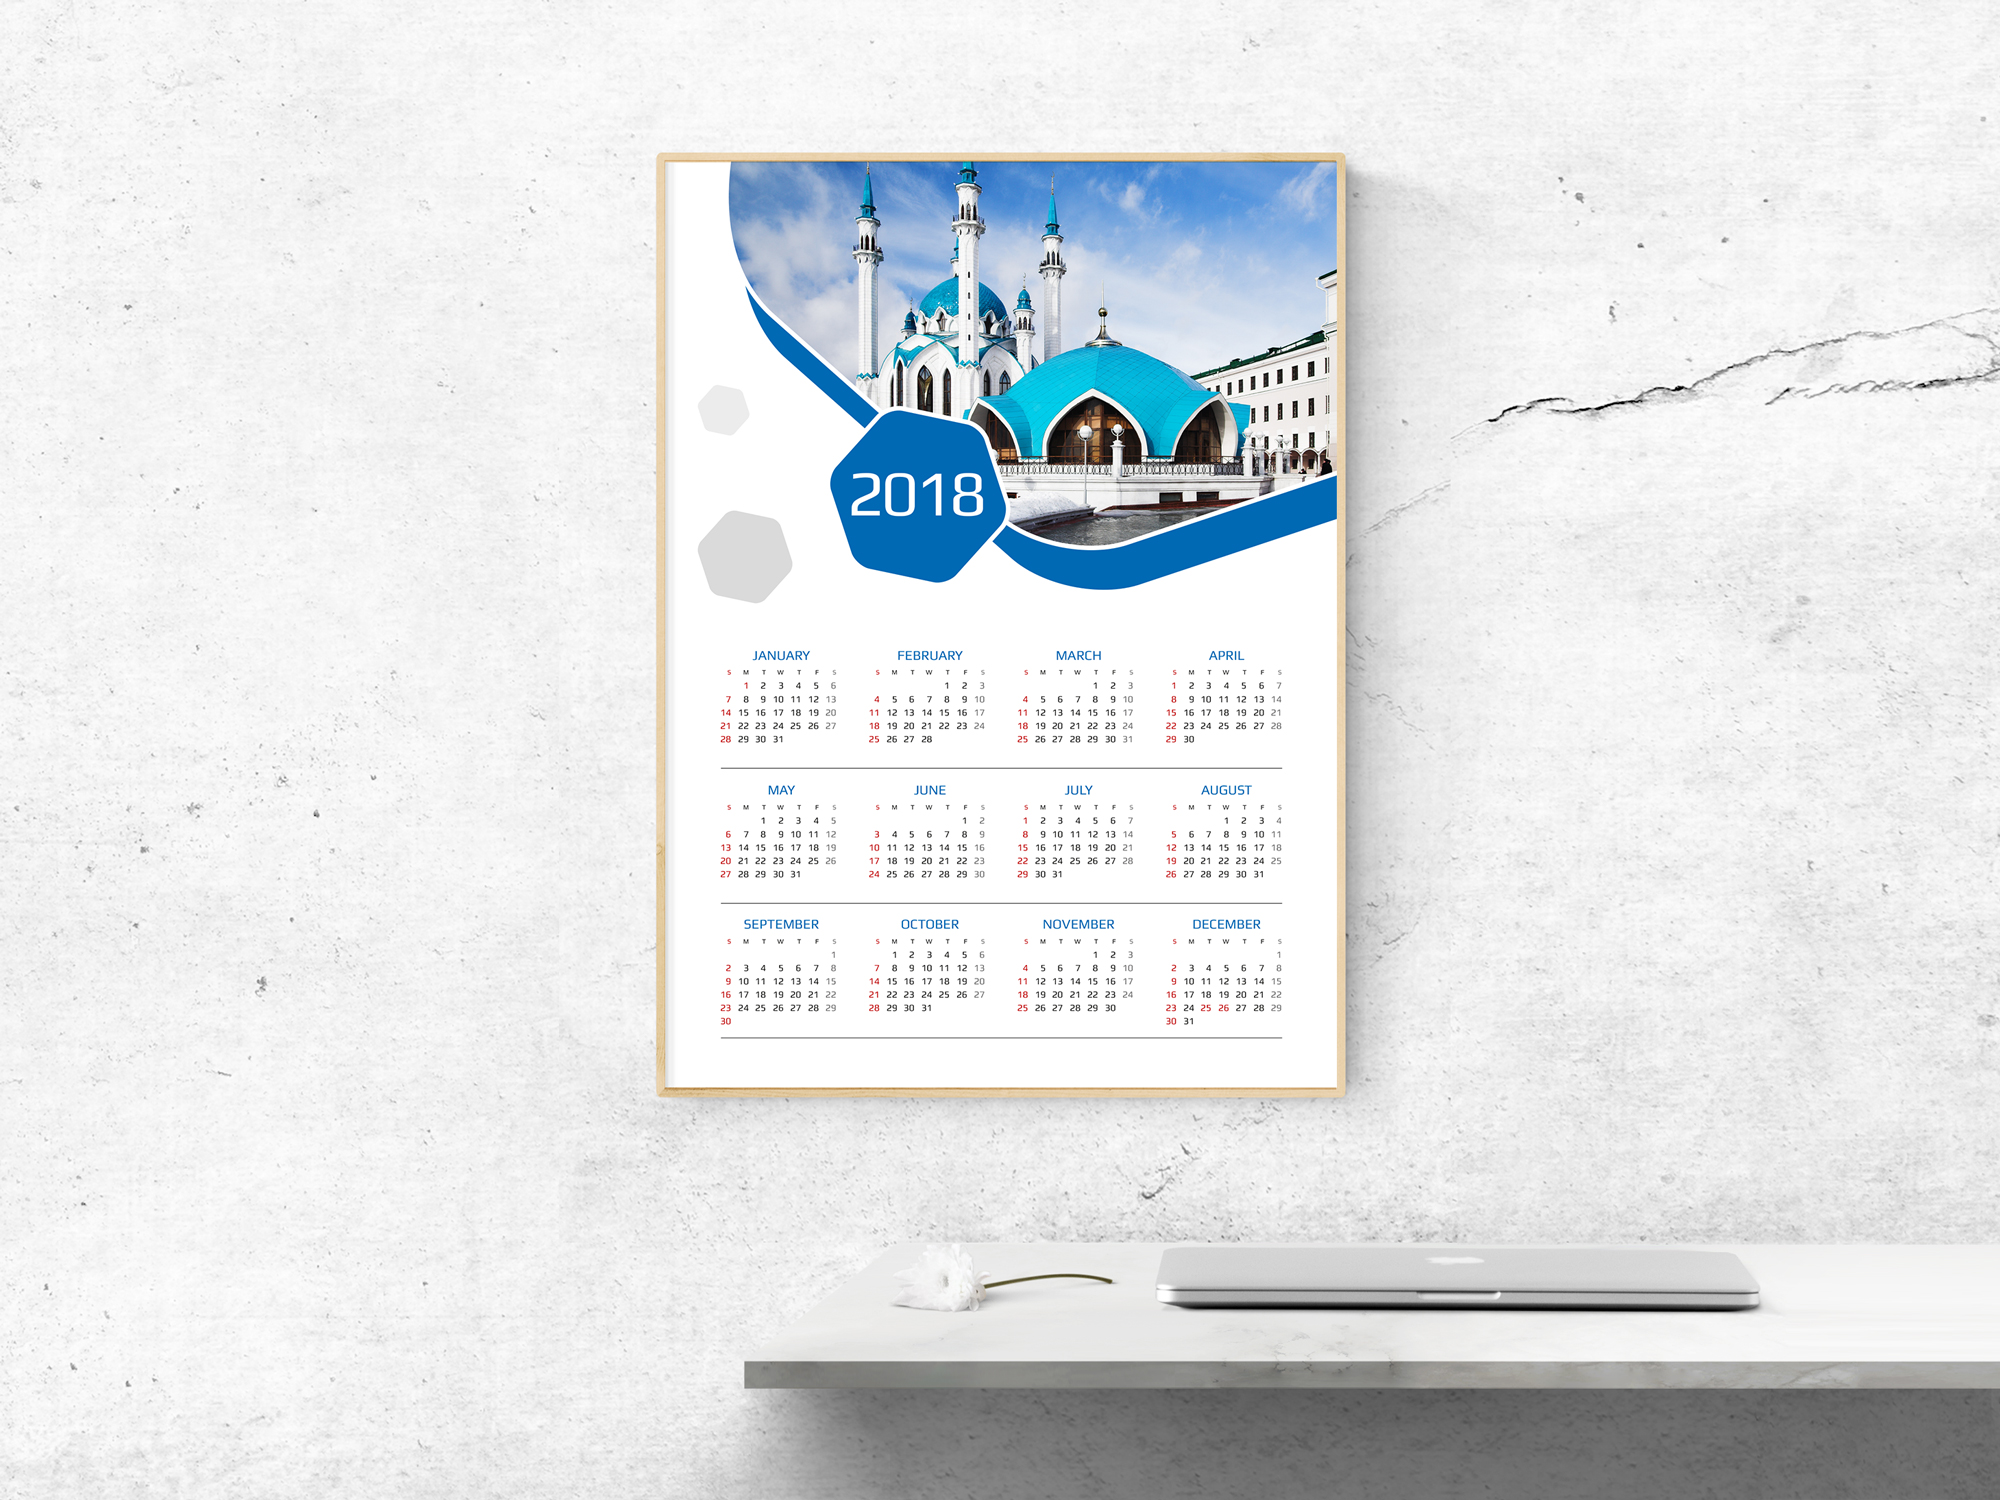 2018 calendar download this best template for poster wall. Black Bedroom Furniture Sets. Home Design Ideas